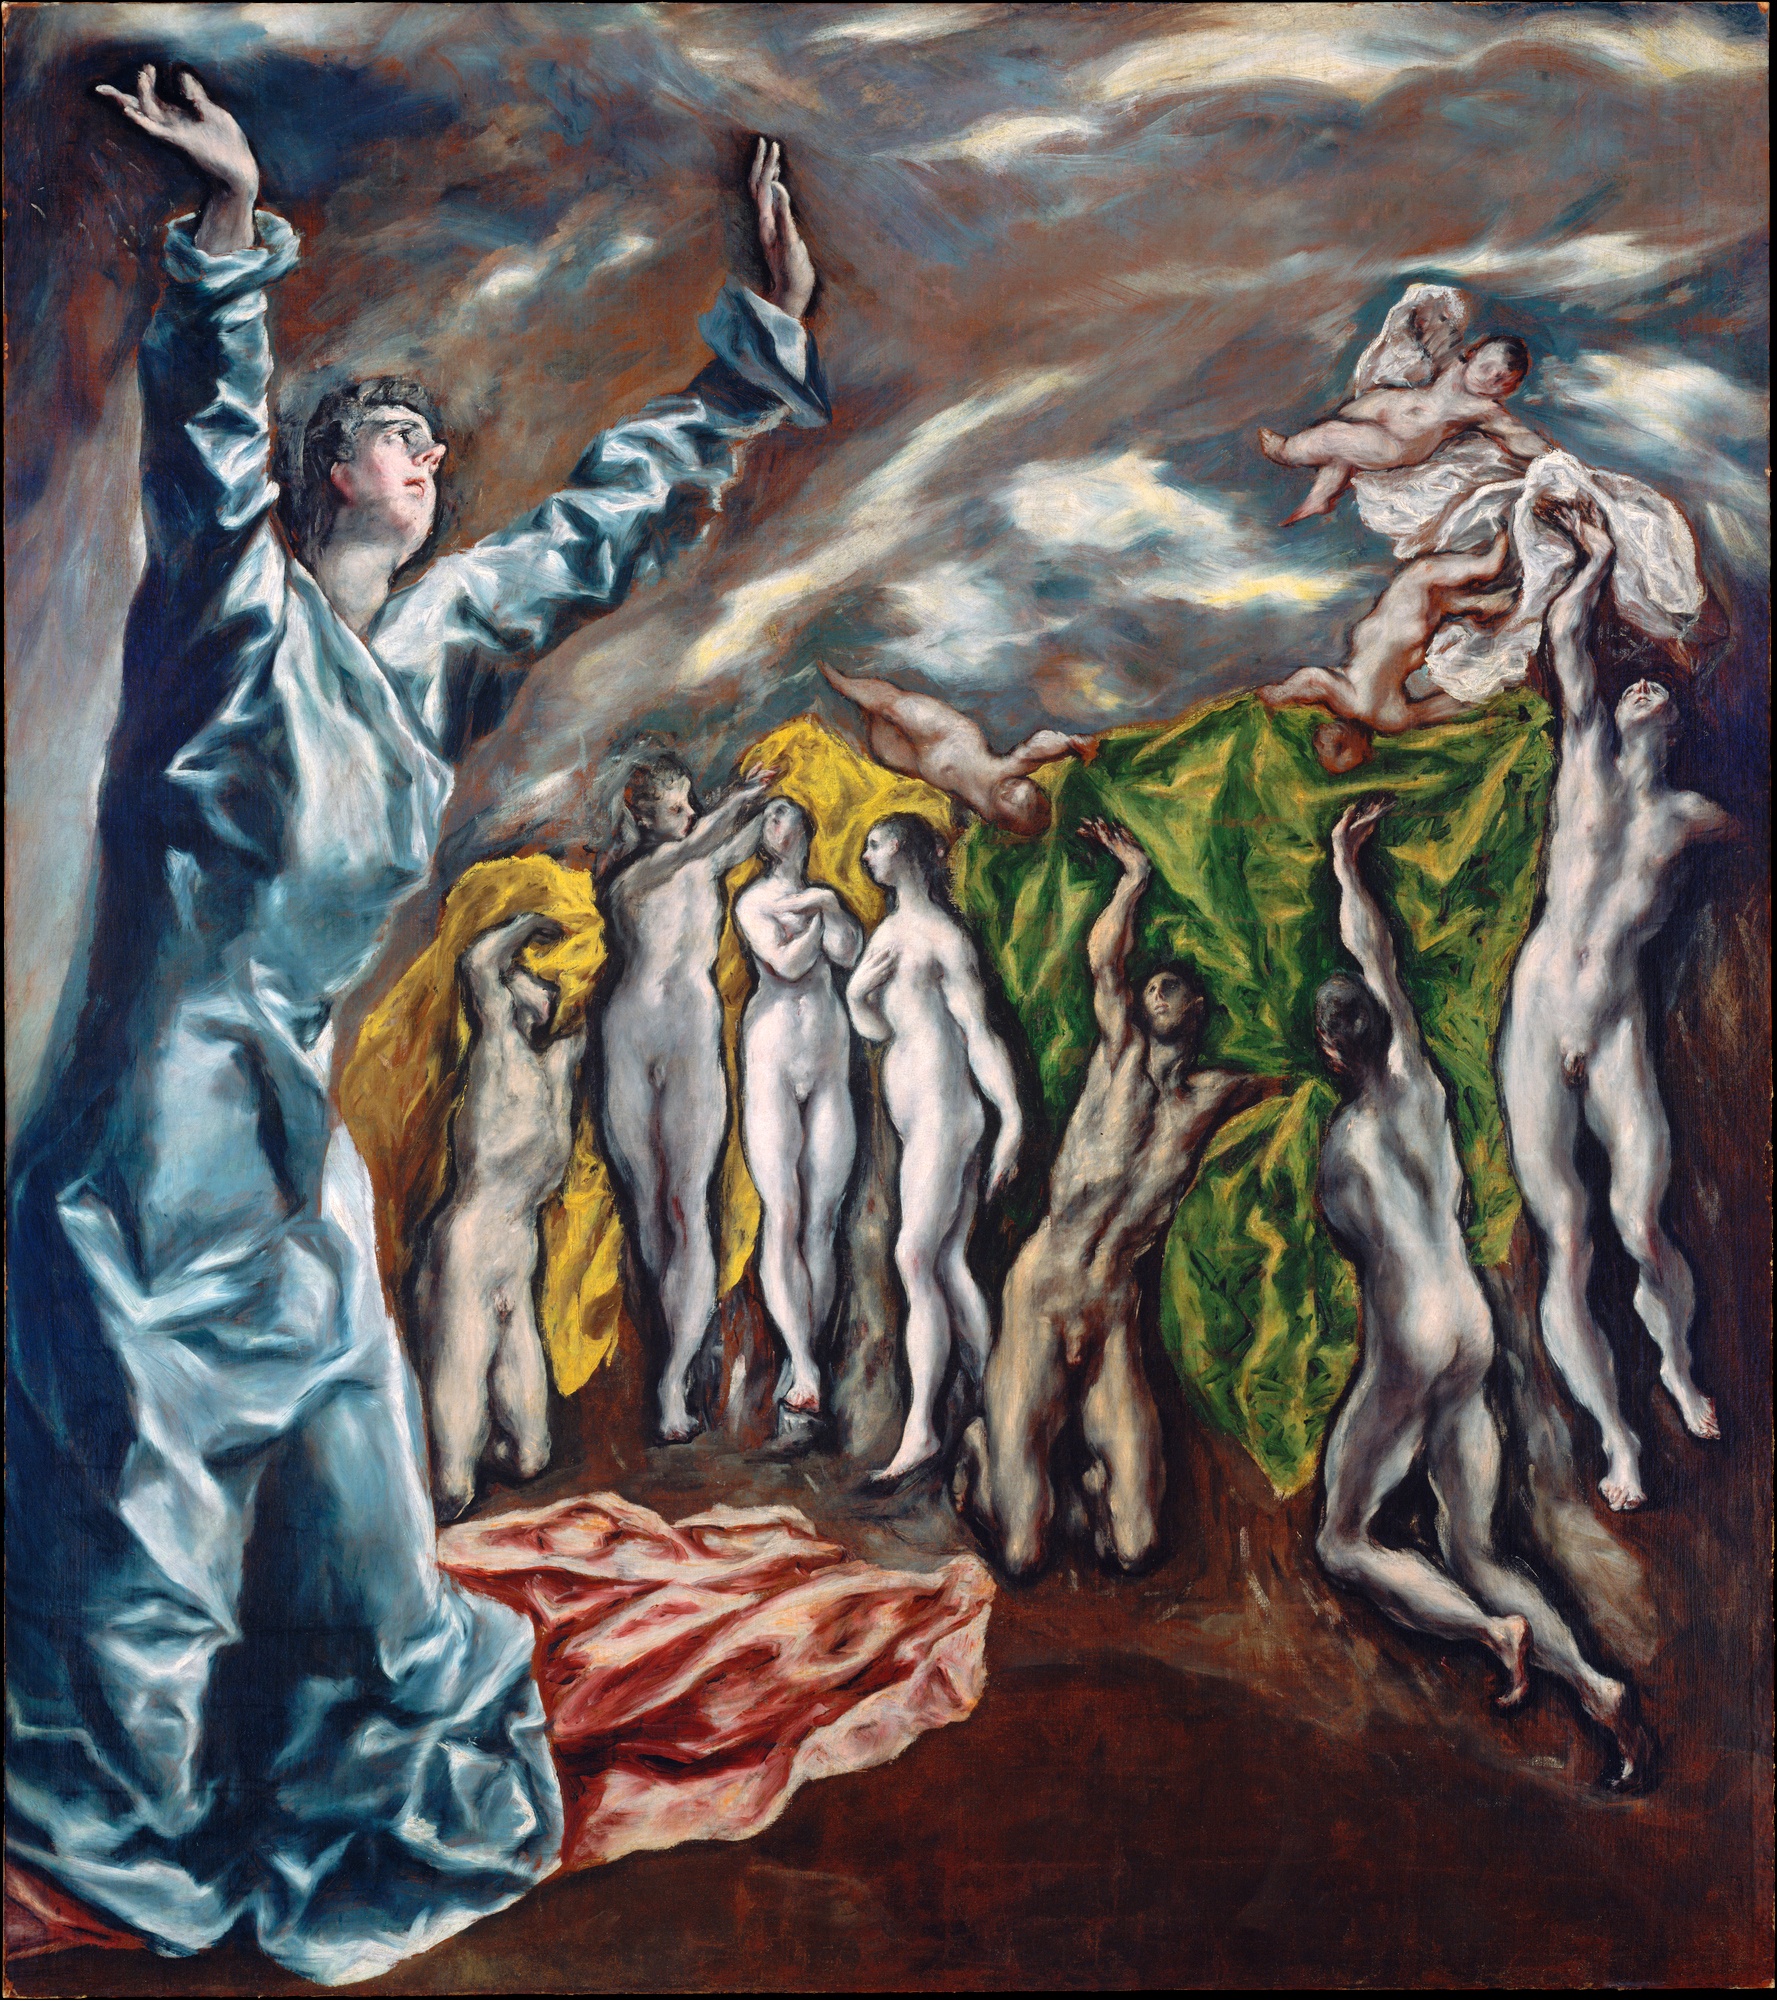 The Vision of Saint John; by El Greco (circa 1608-1614)